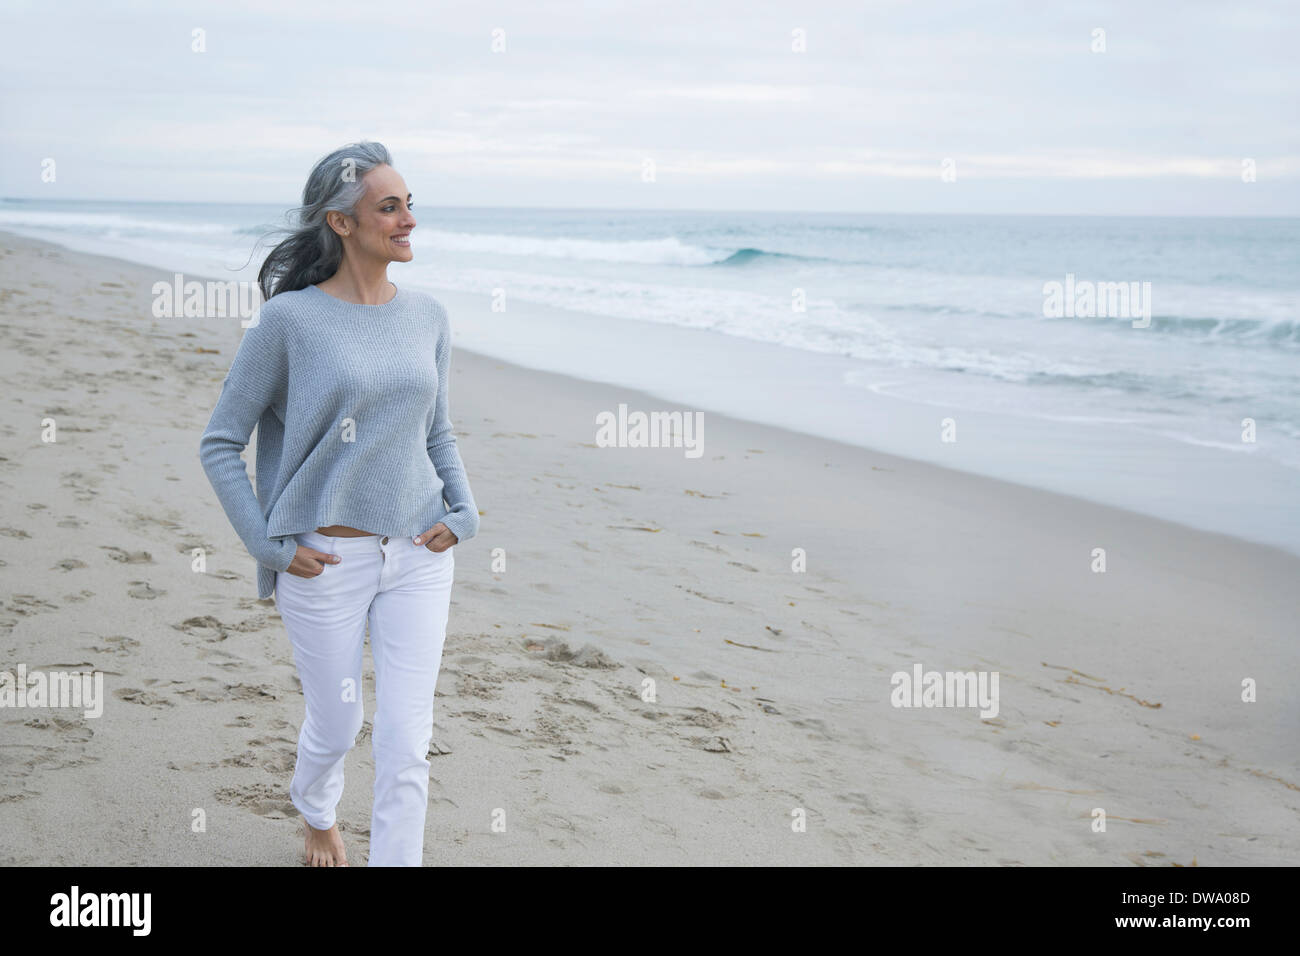 Young woman walking on beach, Los Angeles, Californie, USA Photo Stock